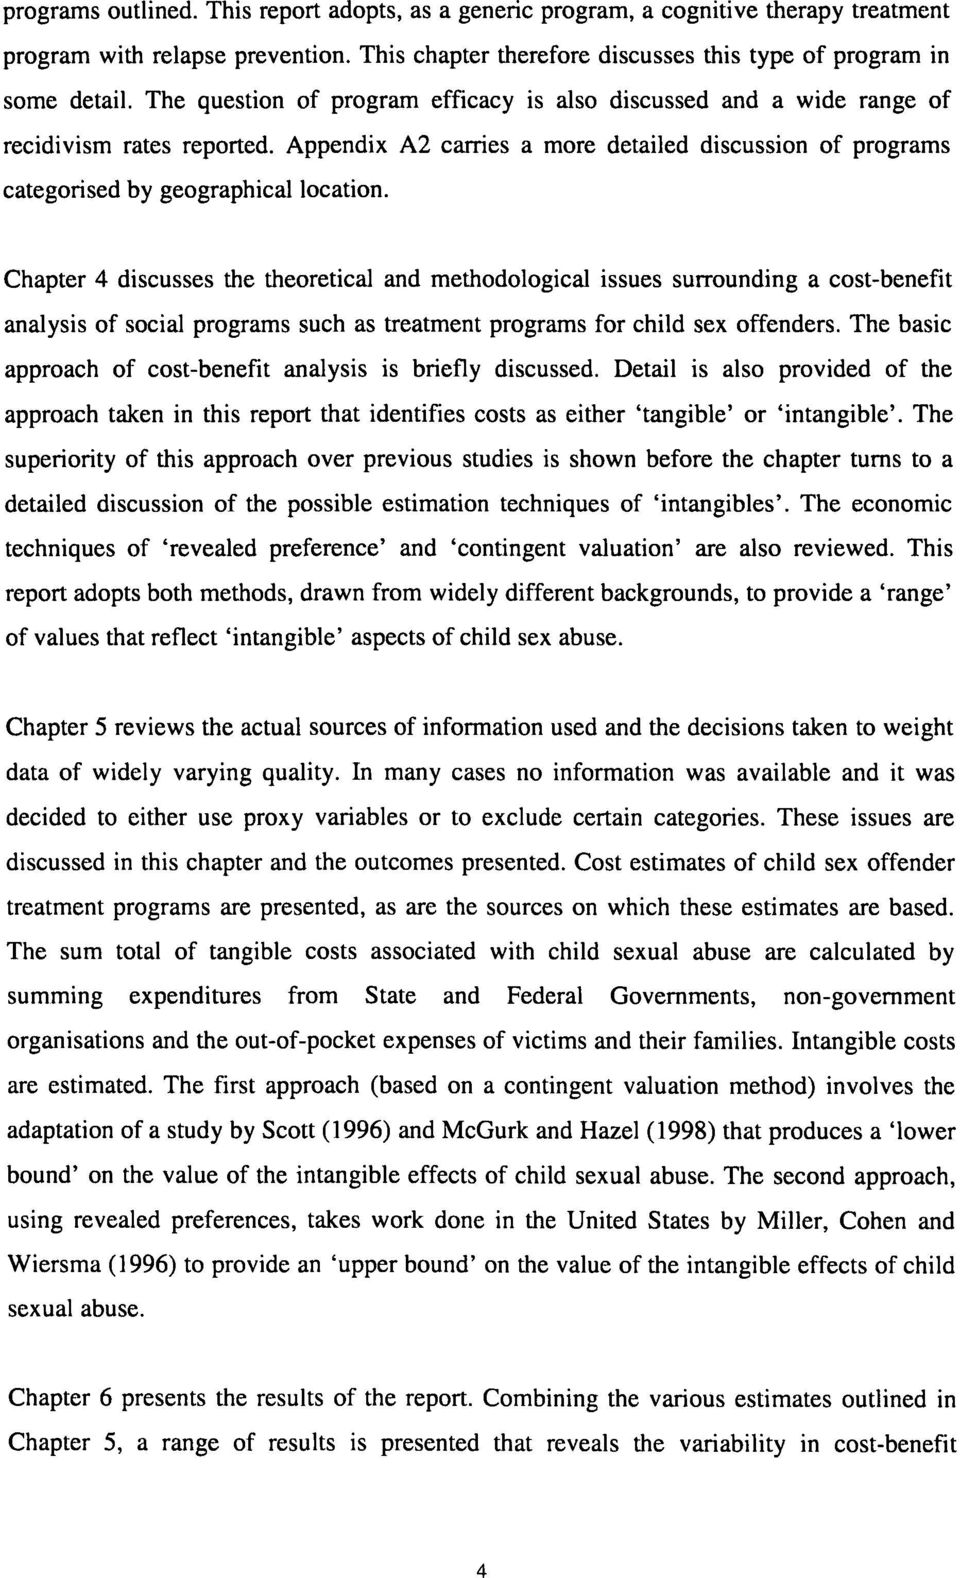 Chapter 4 discusses the theoretical and methodological issues surrounding a cost-benefit analysis of social programs such as treatment programs for child sex offenders.